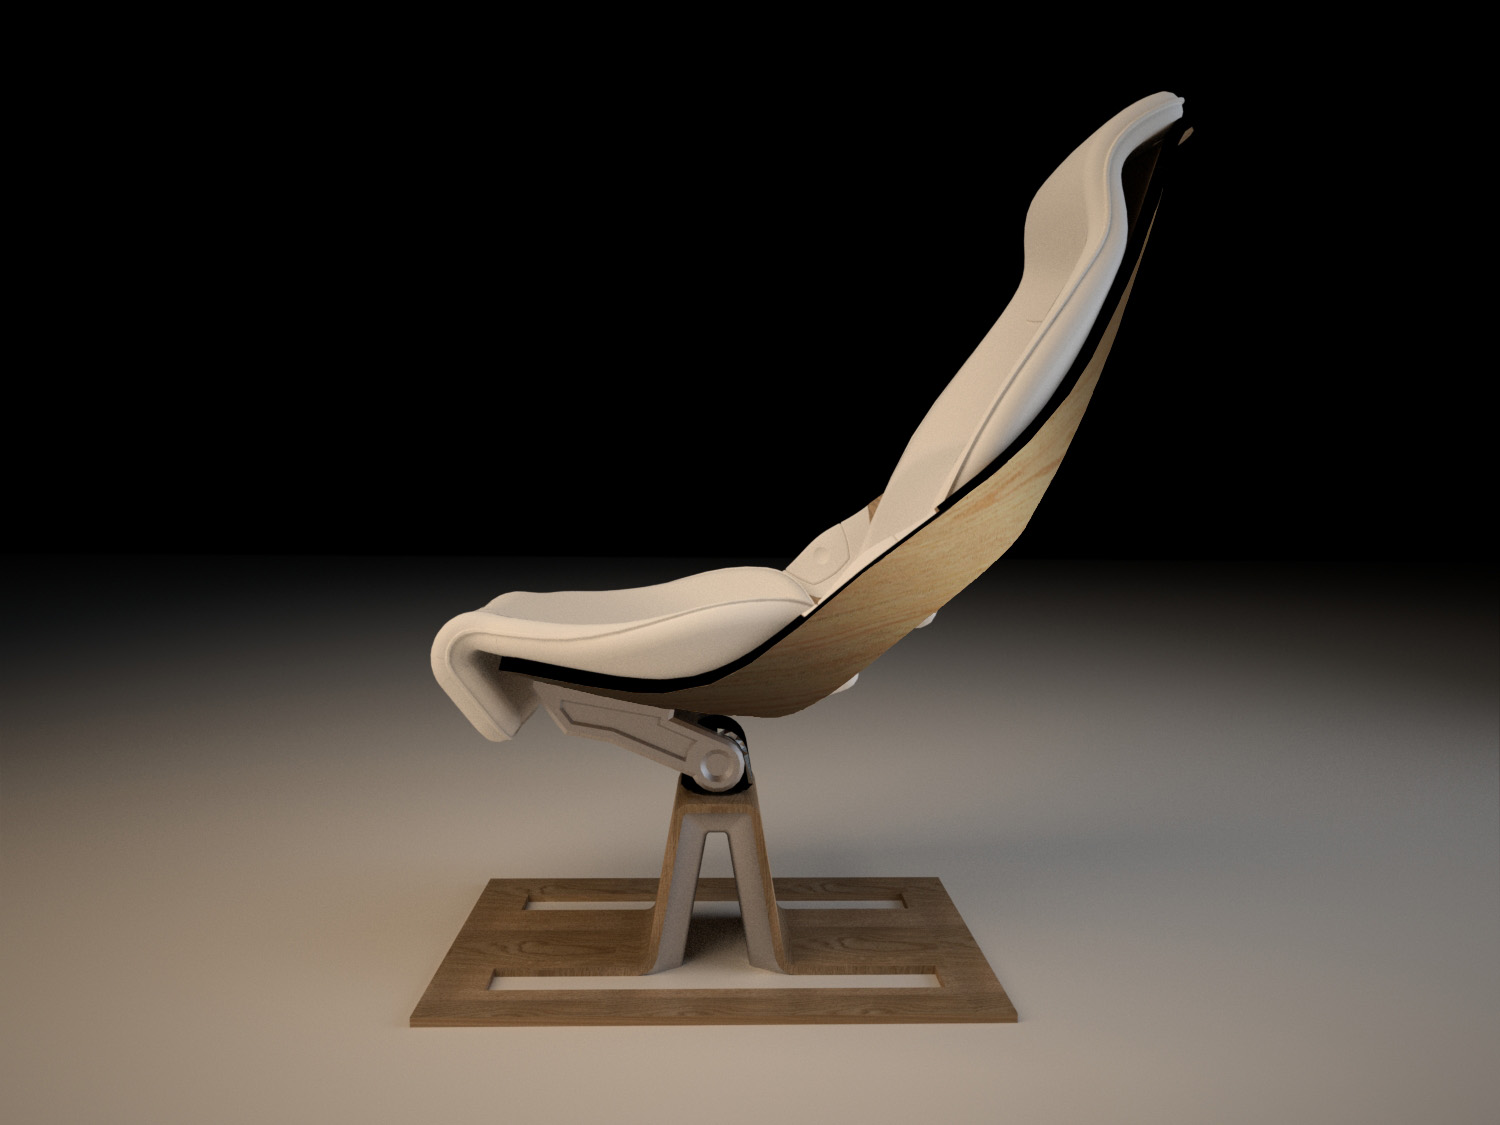 Stand alone airplane chair by Adriaan Van Eyndhoven at